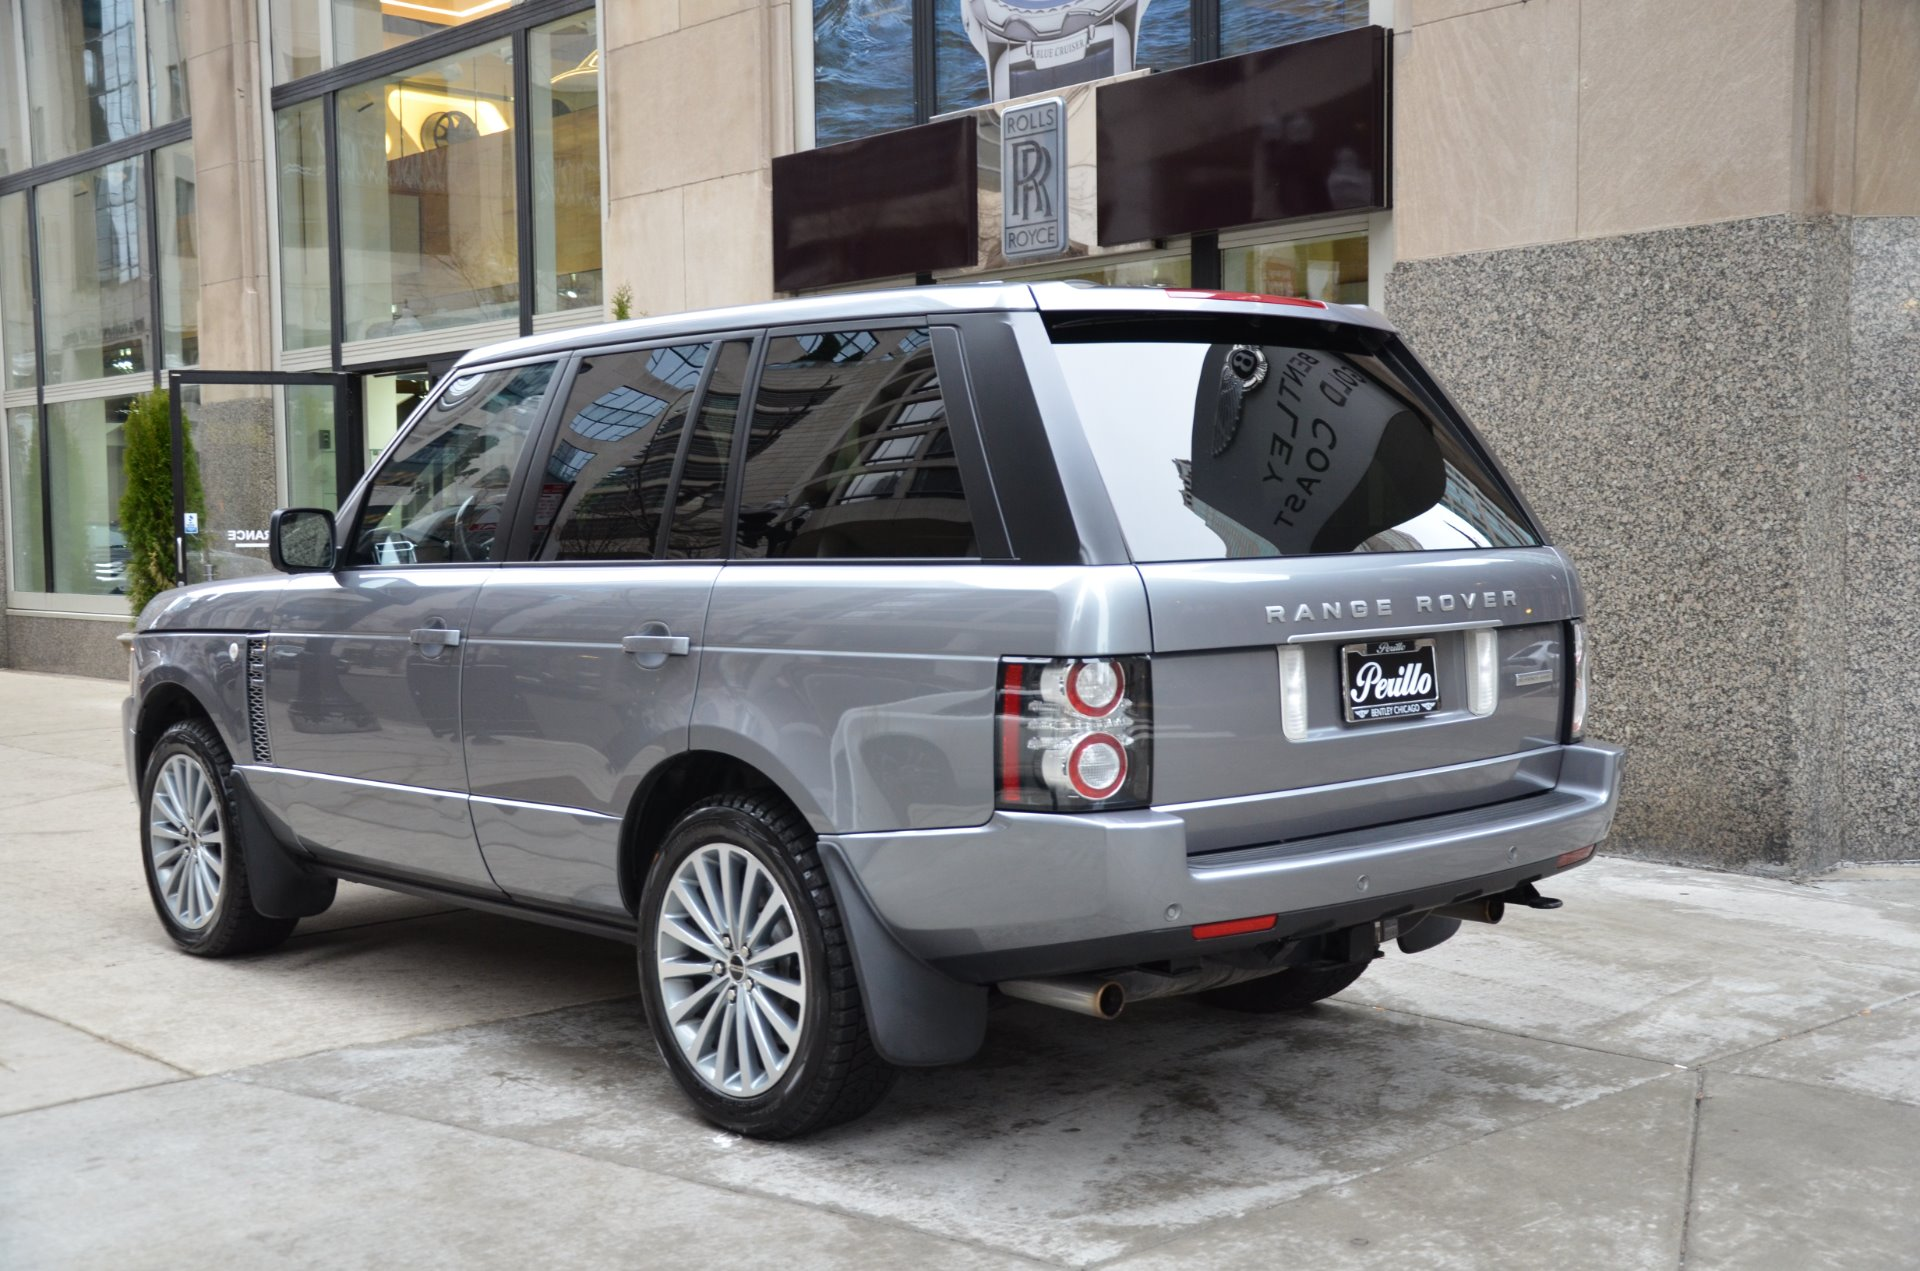 2012 land rover range rover supercharged stock gc roland147 for sale near chicago il il - Land rover garage near me ...